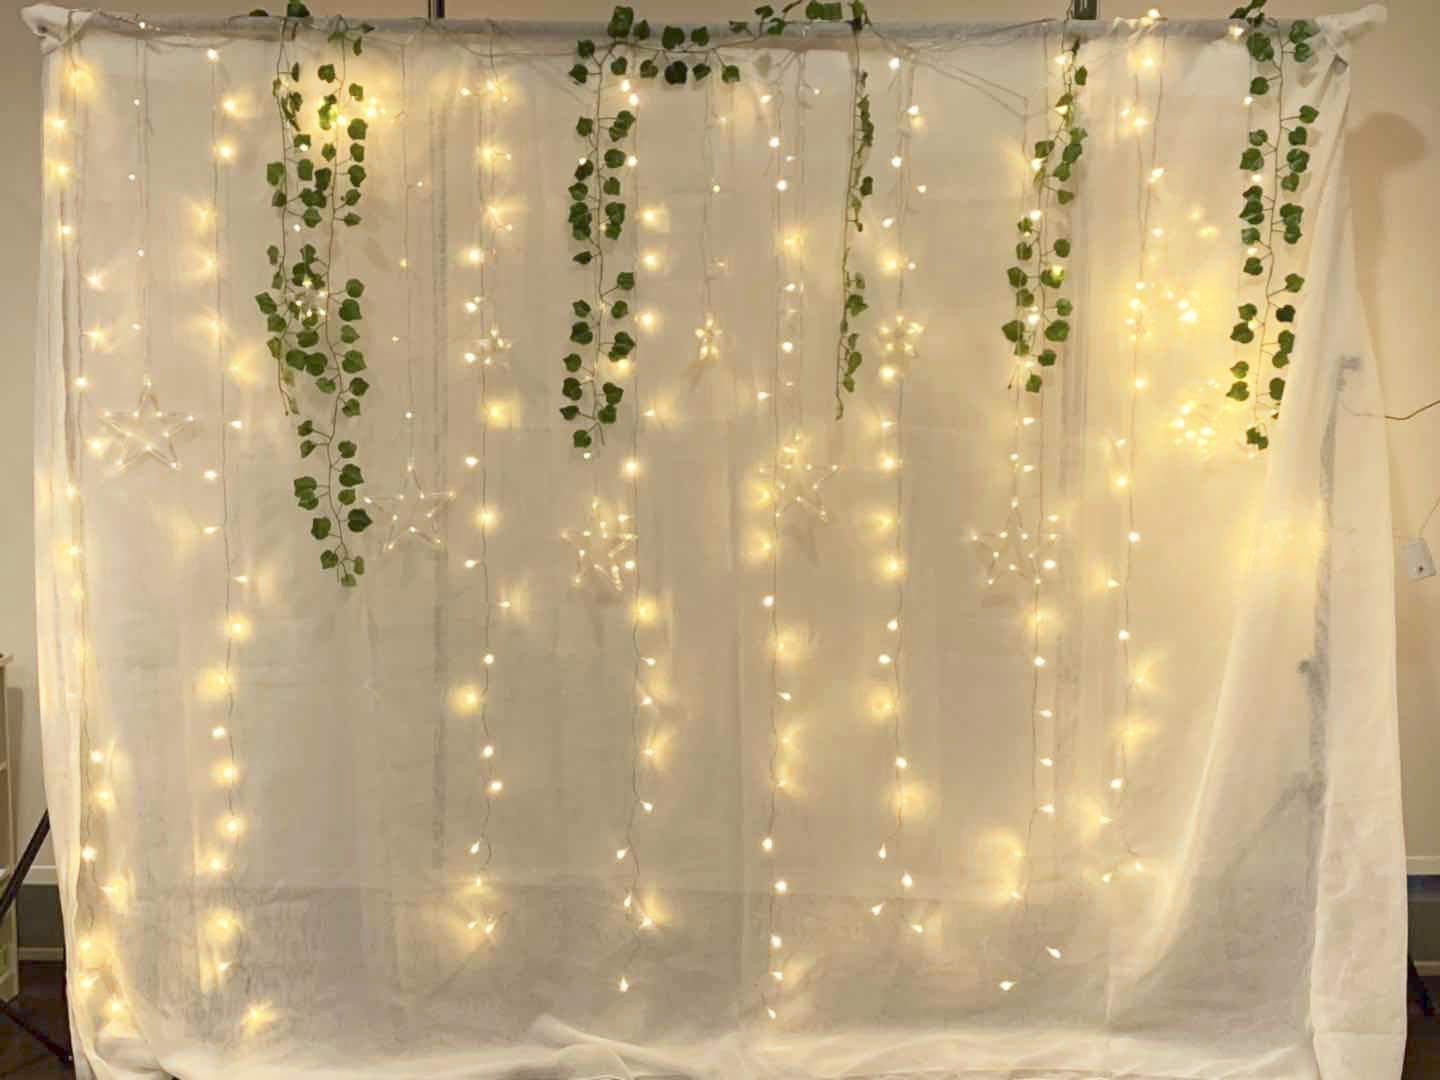 Rent Or Sell High Quality Sheer White Backdrop Curtain Design Craft Others On Carousell